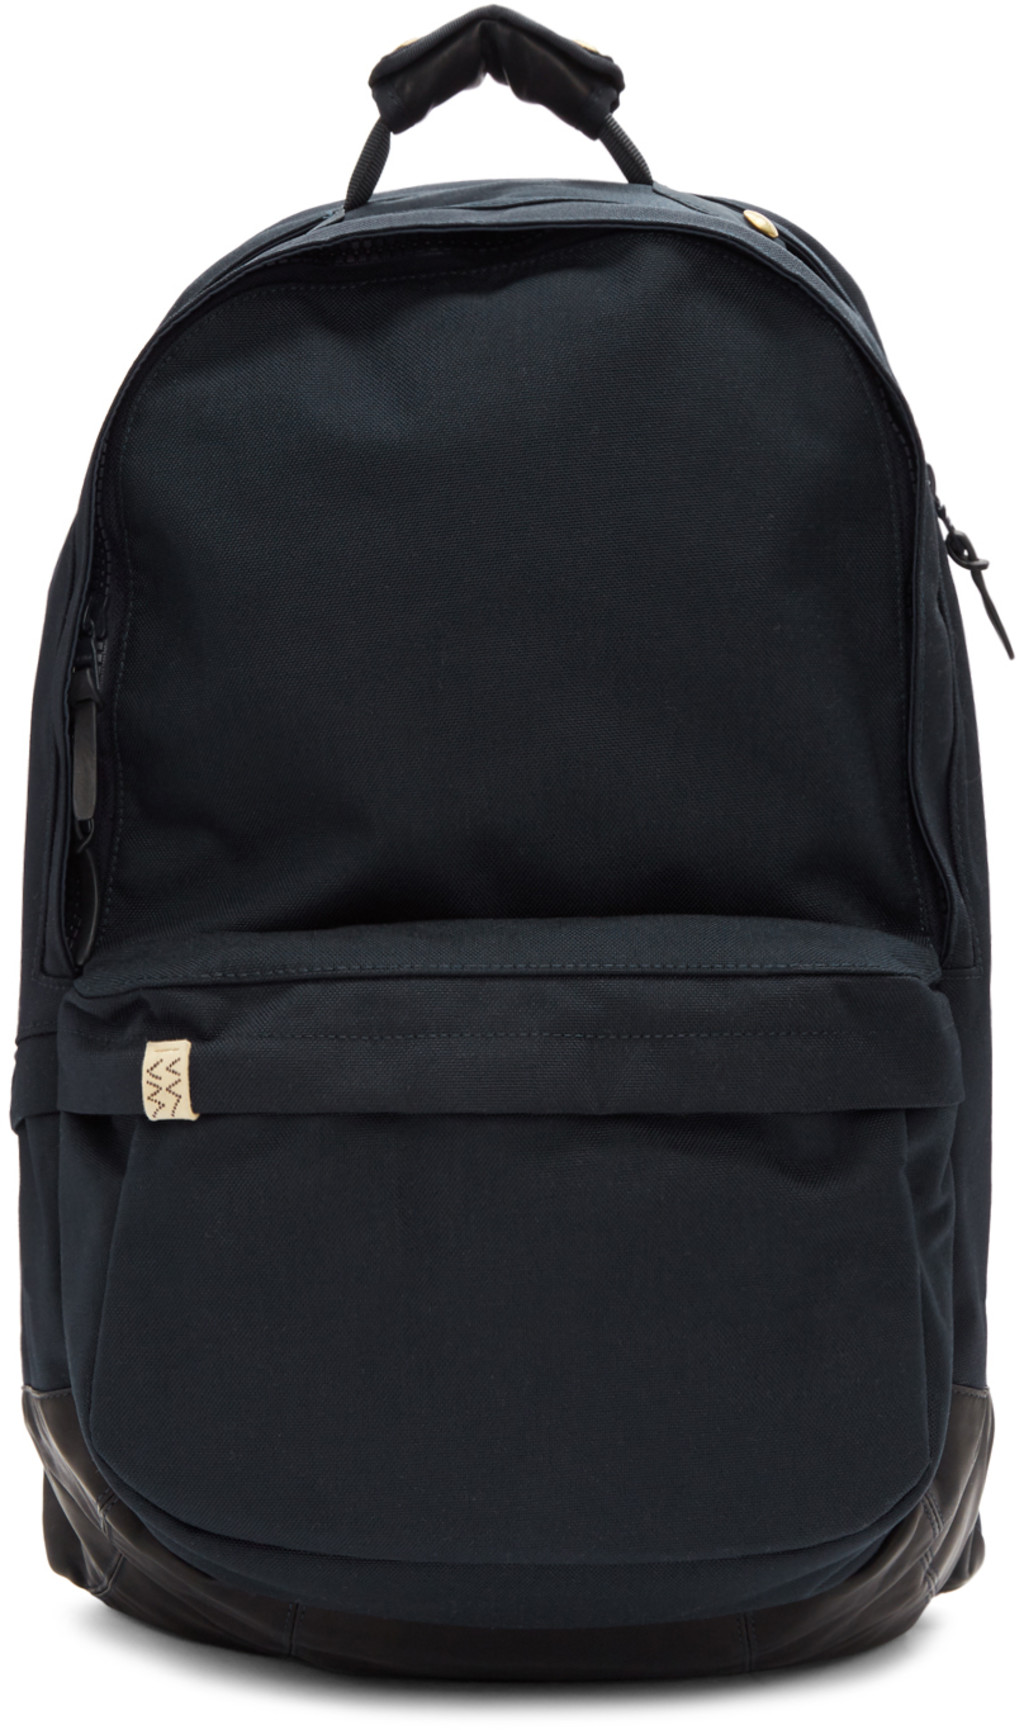 ef4ff06c5 Navy Cordura & Leather 22L Backpack